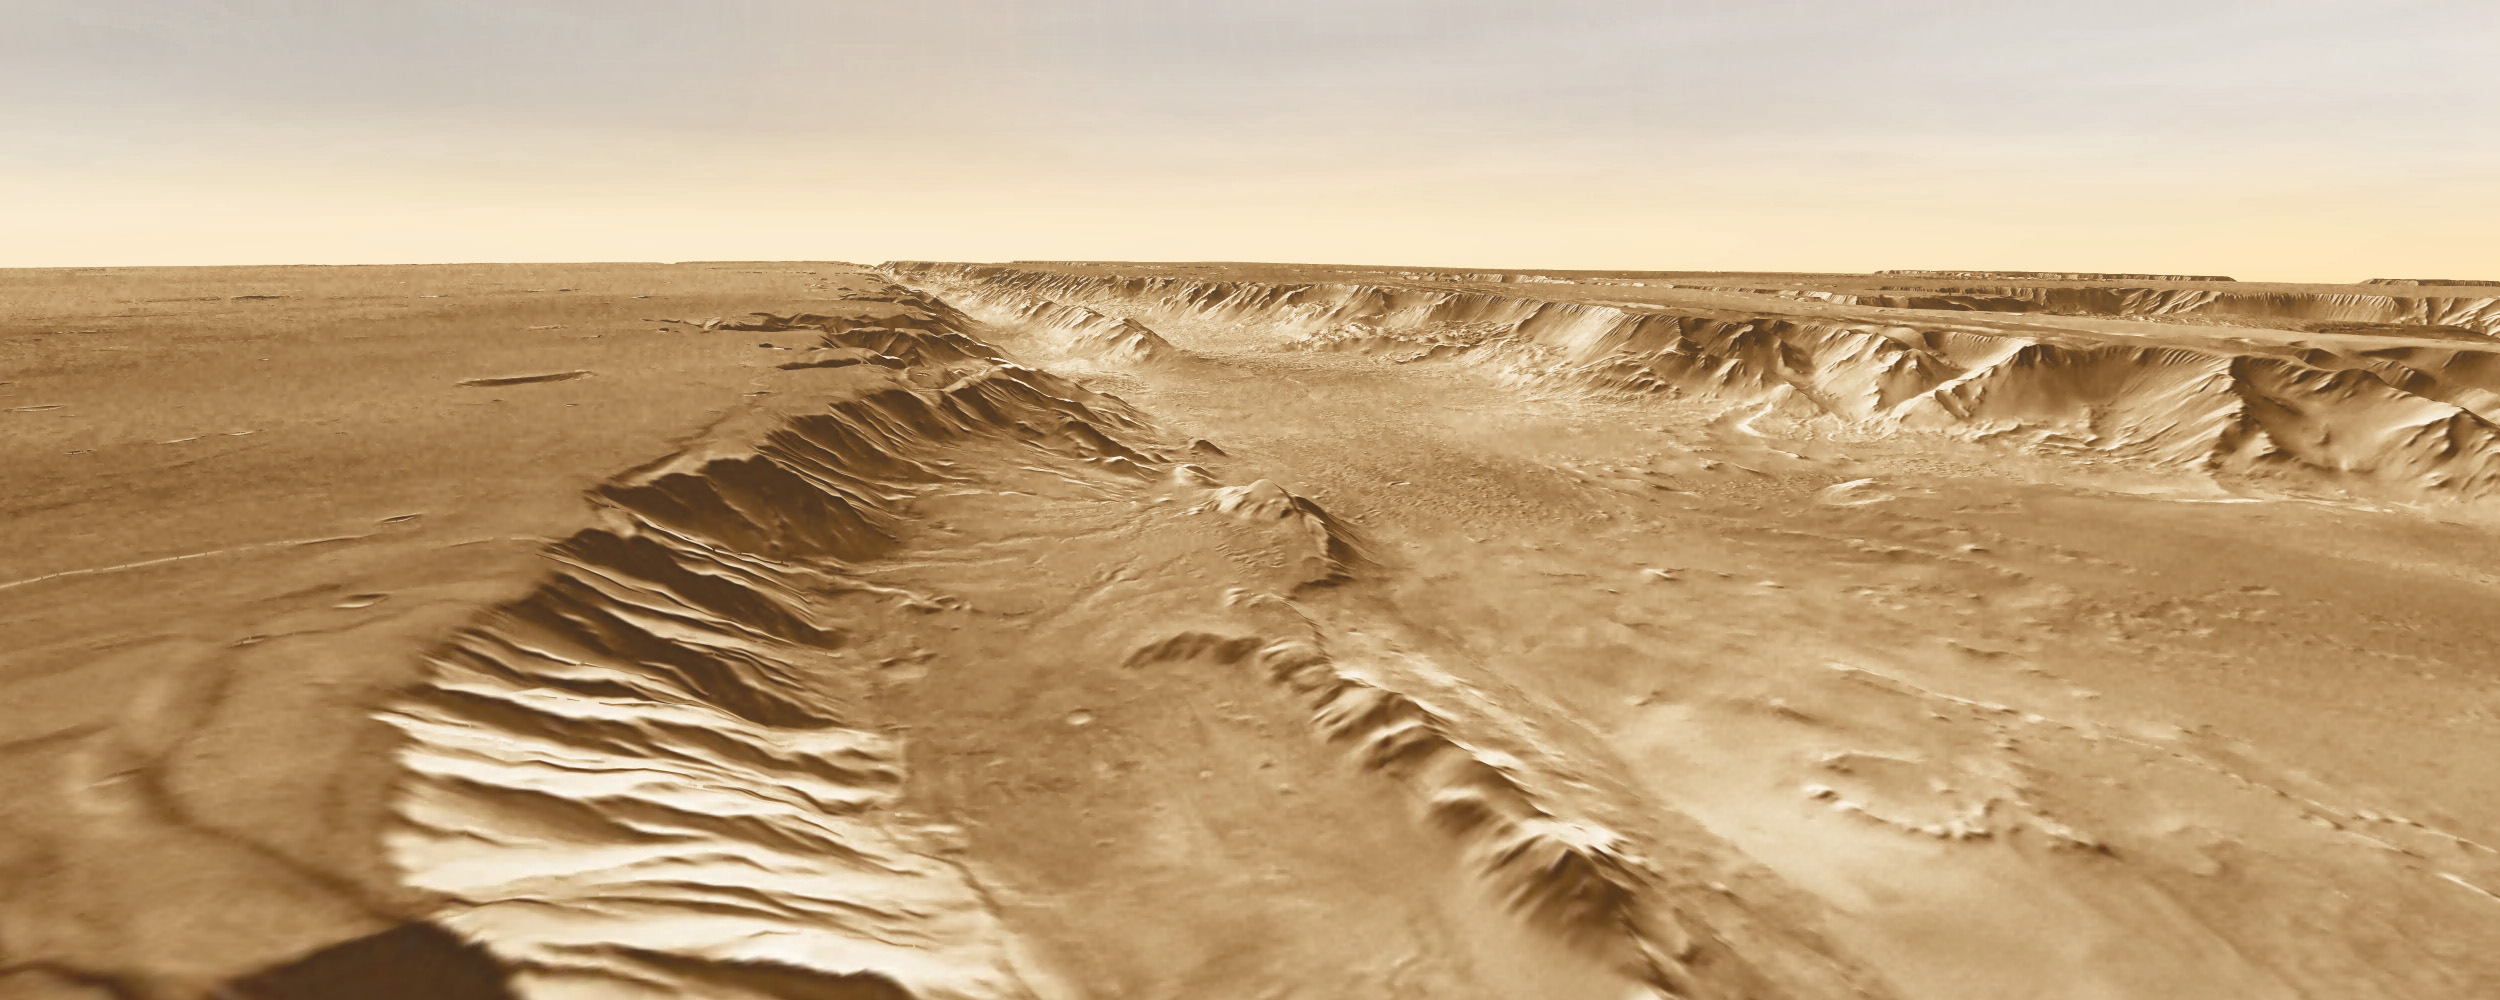 Where to Land on Mars: NASA Makes Progress in Quest for 2020 Rover Site